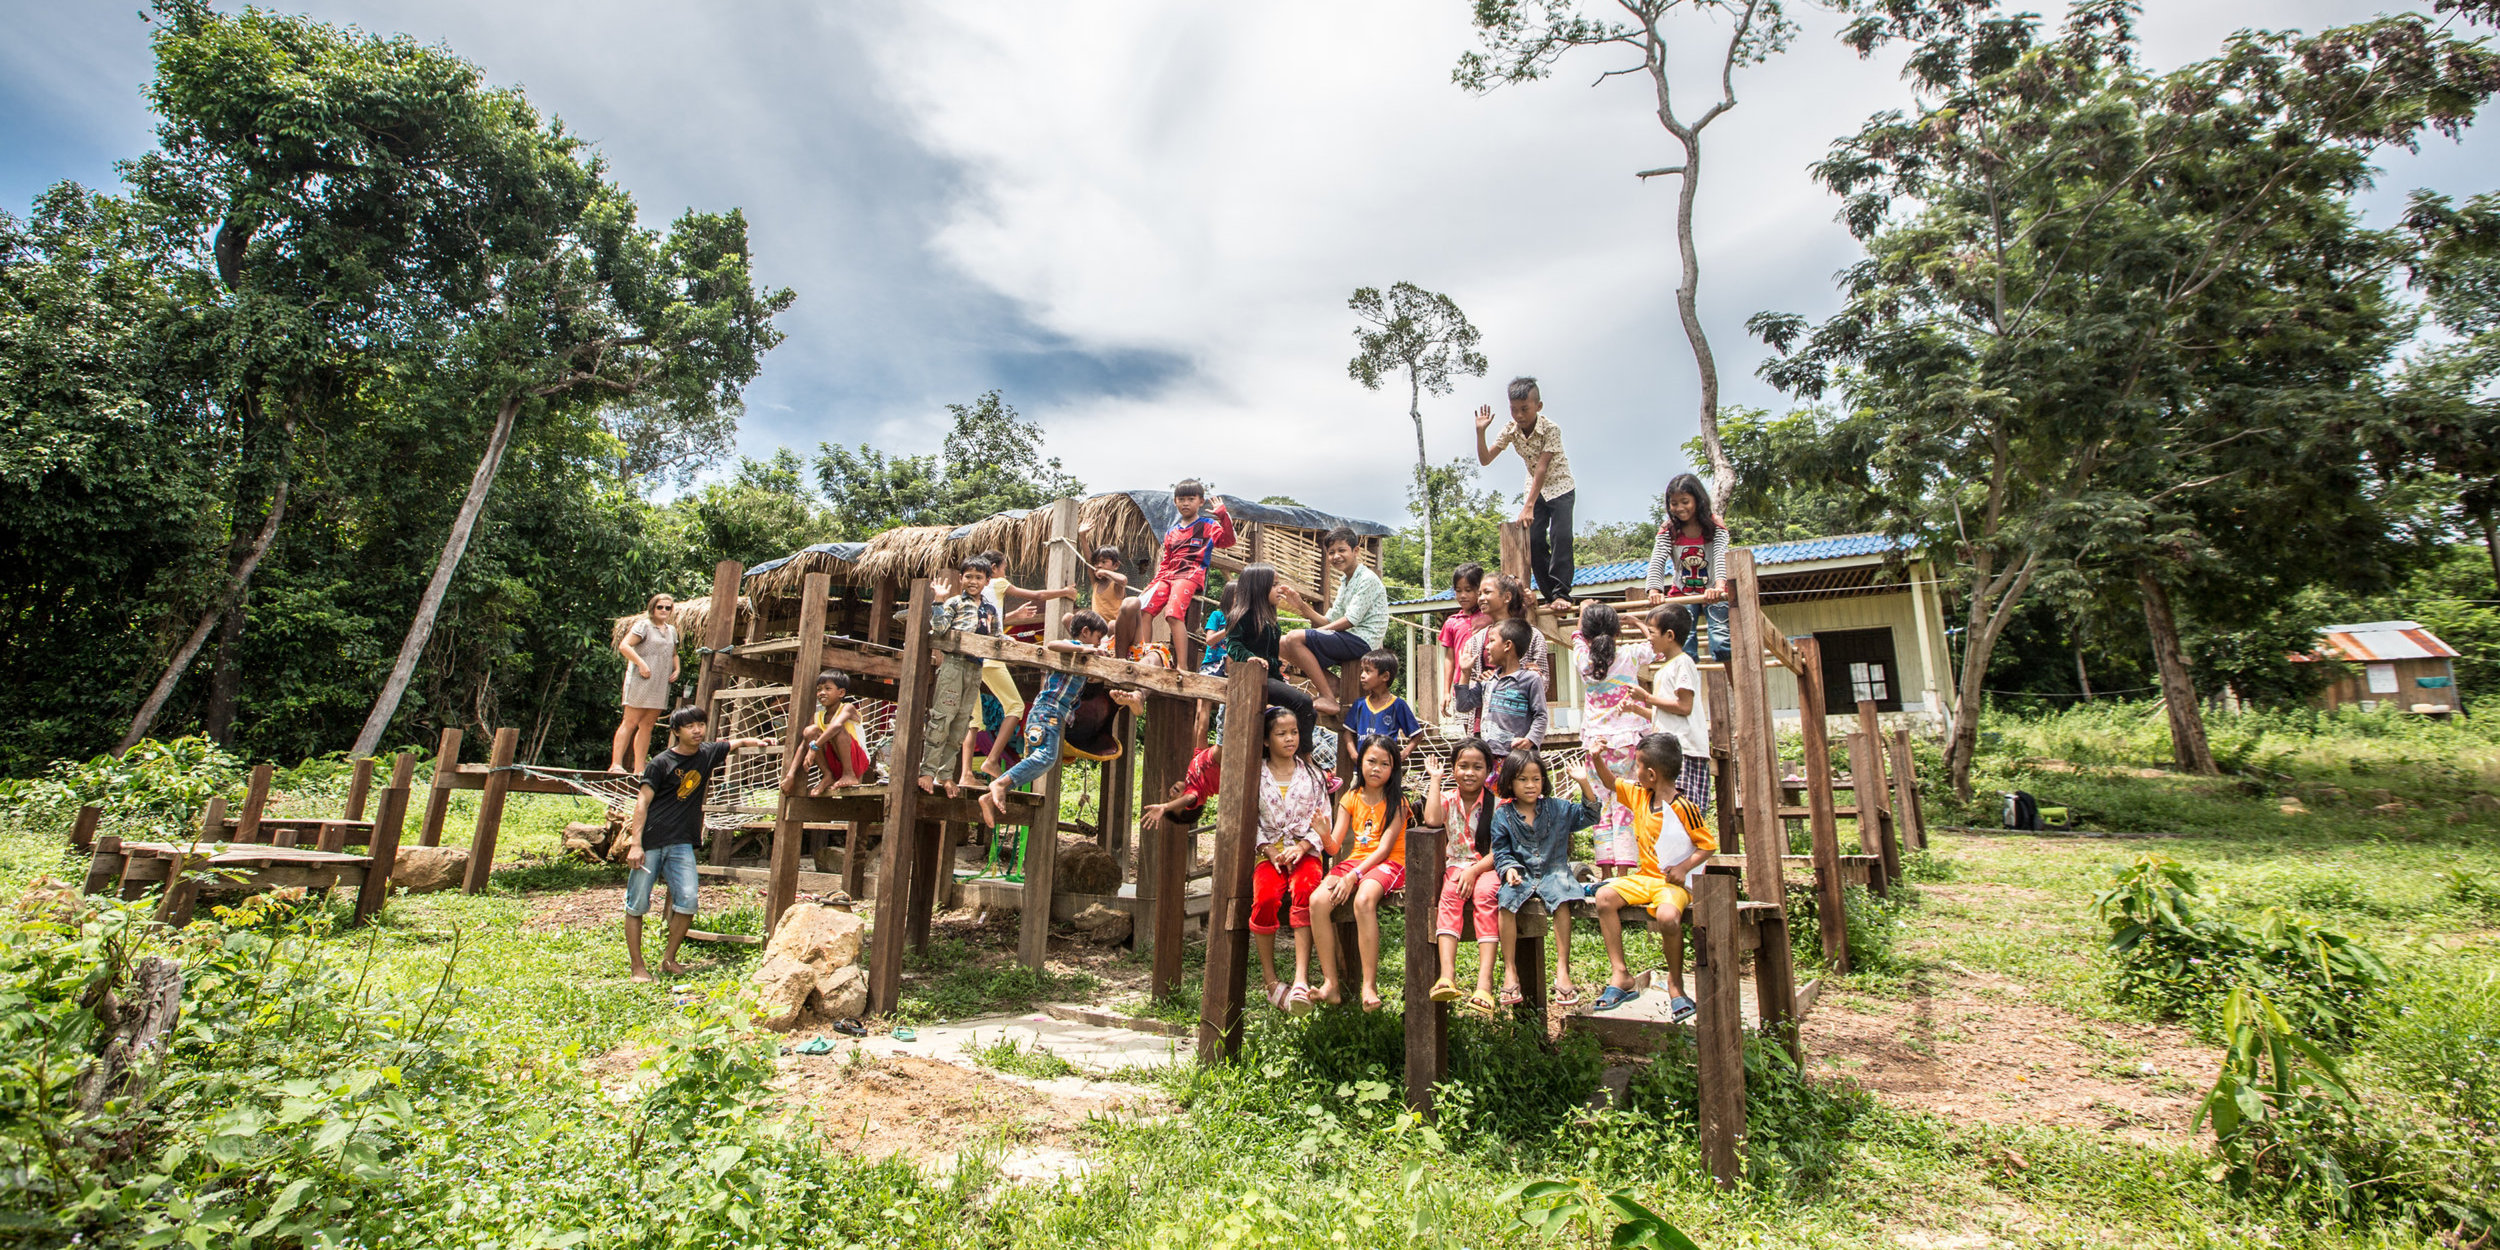 koh rong island, cambodia - playscape